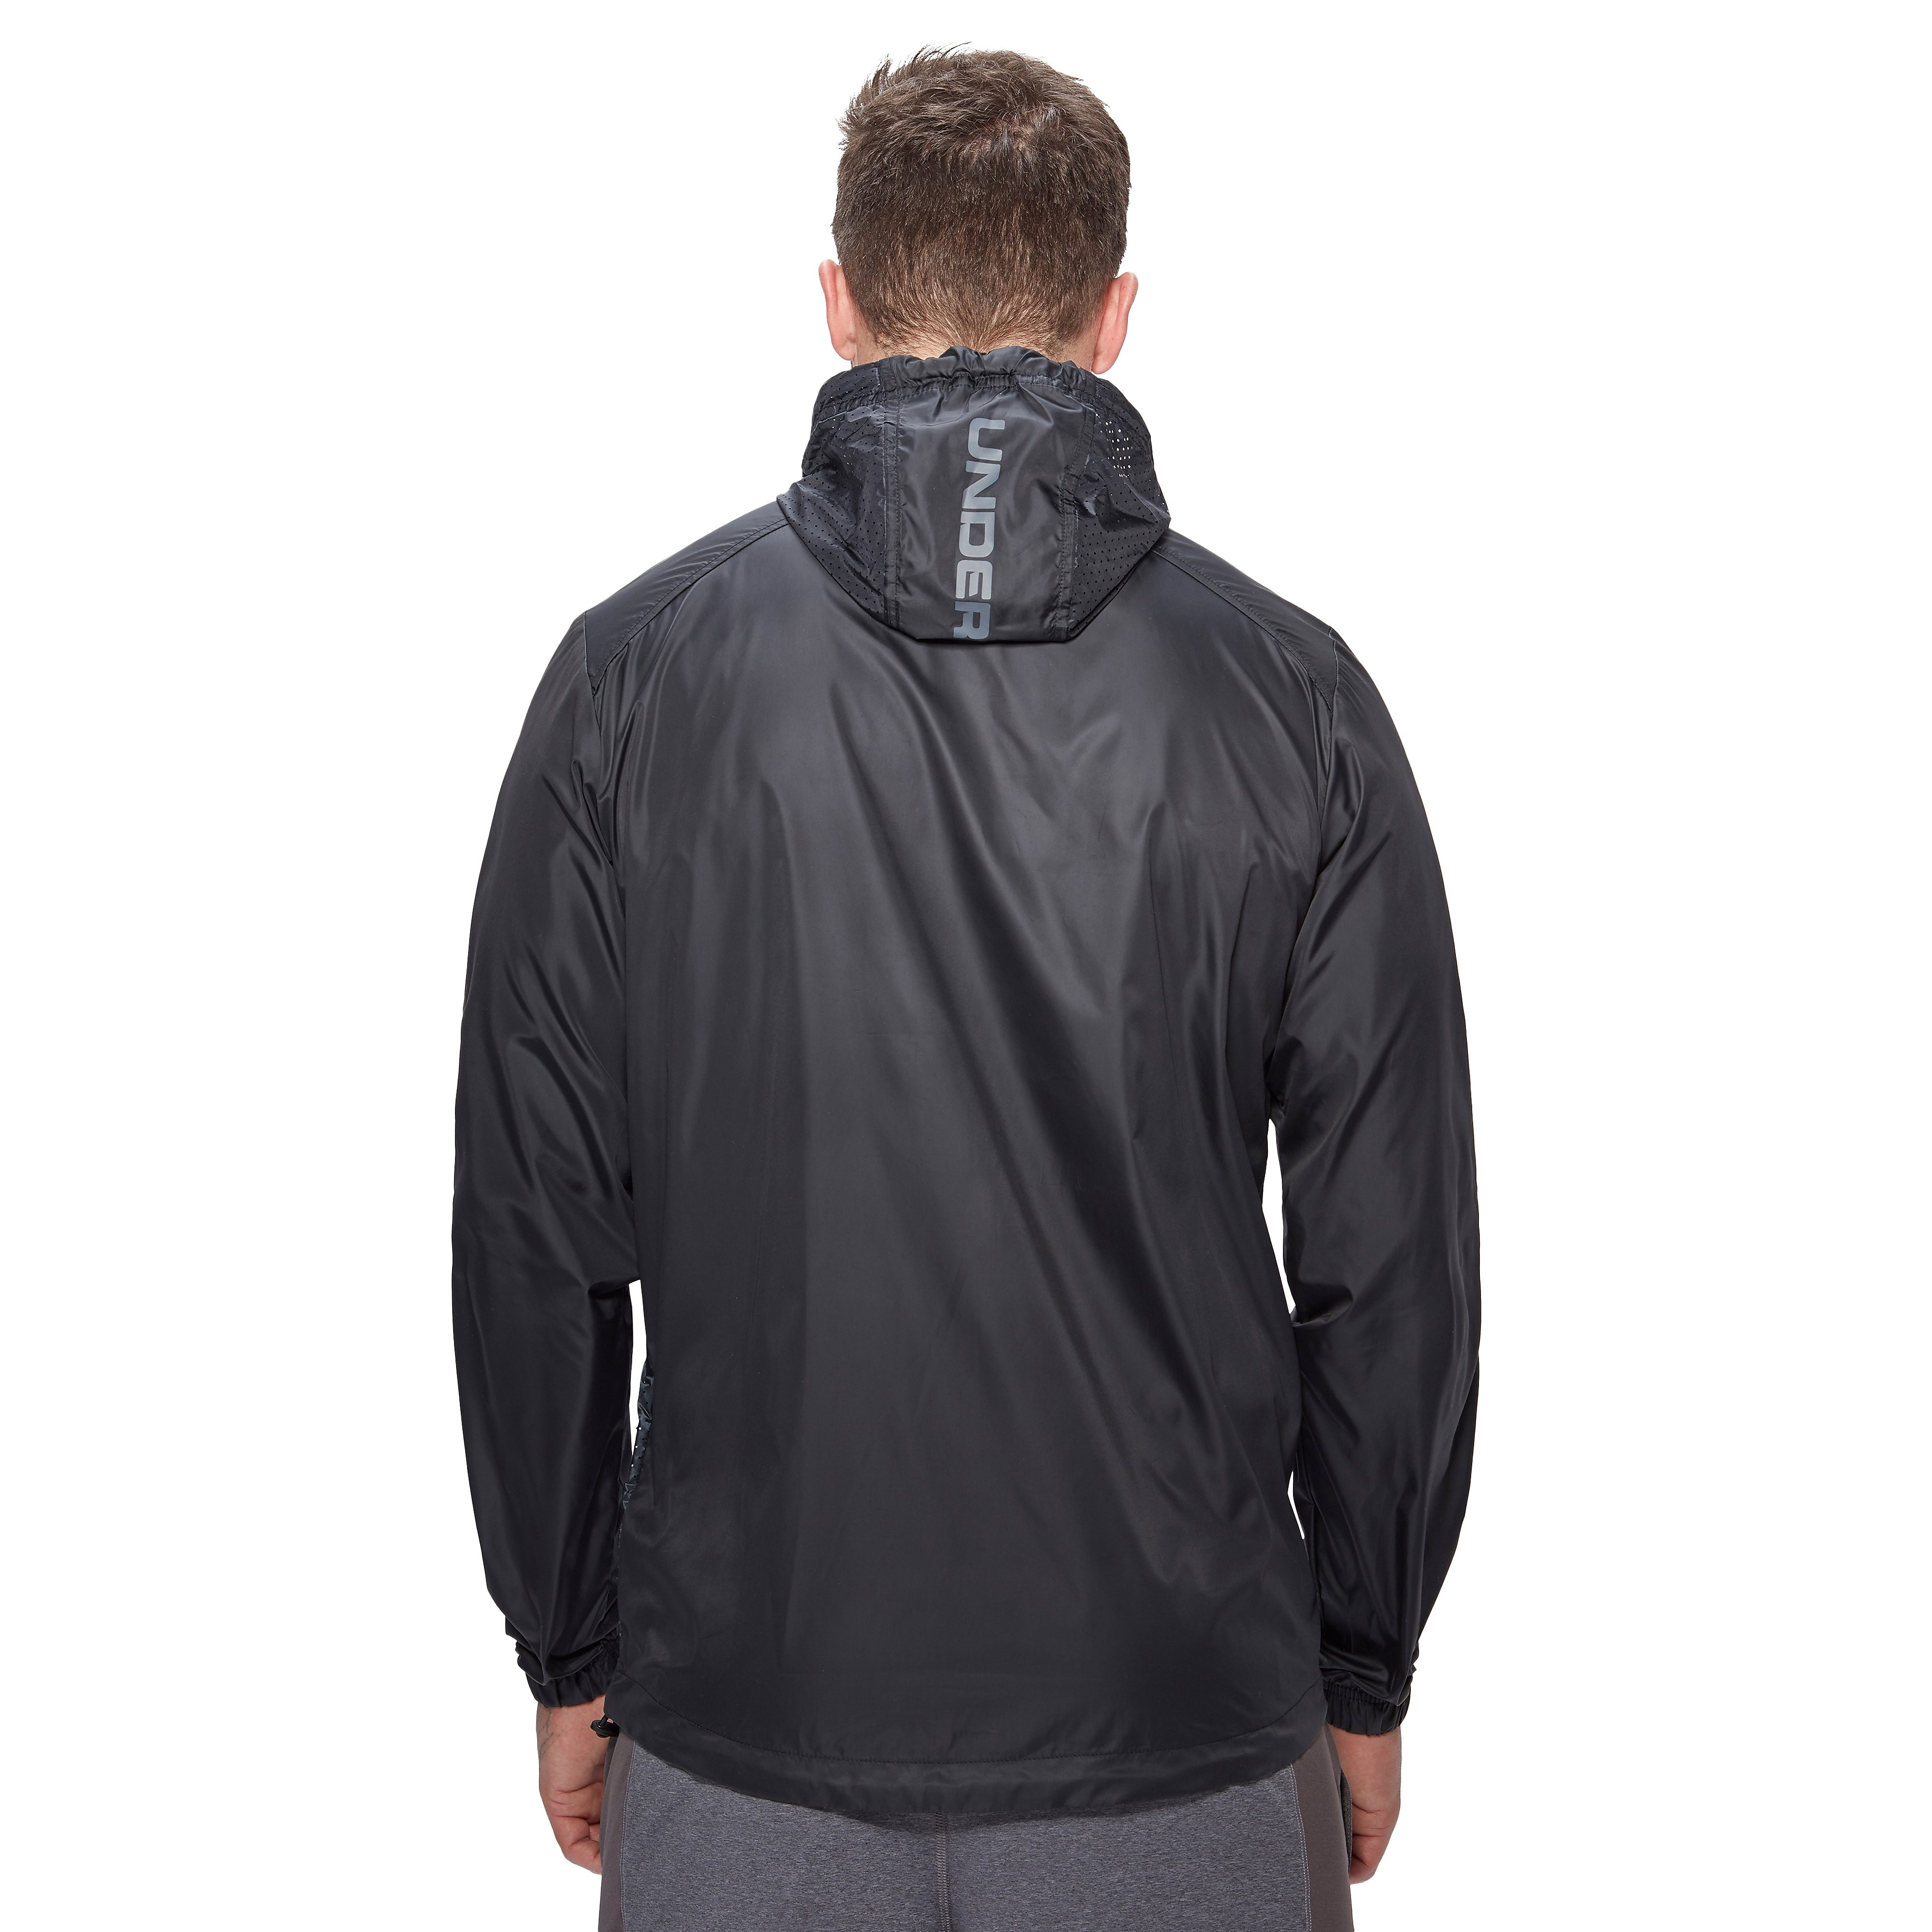 Under Armour Sport Style Windbreaker Men's Jacket